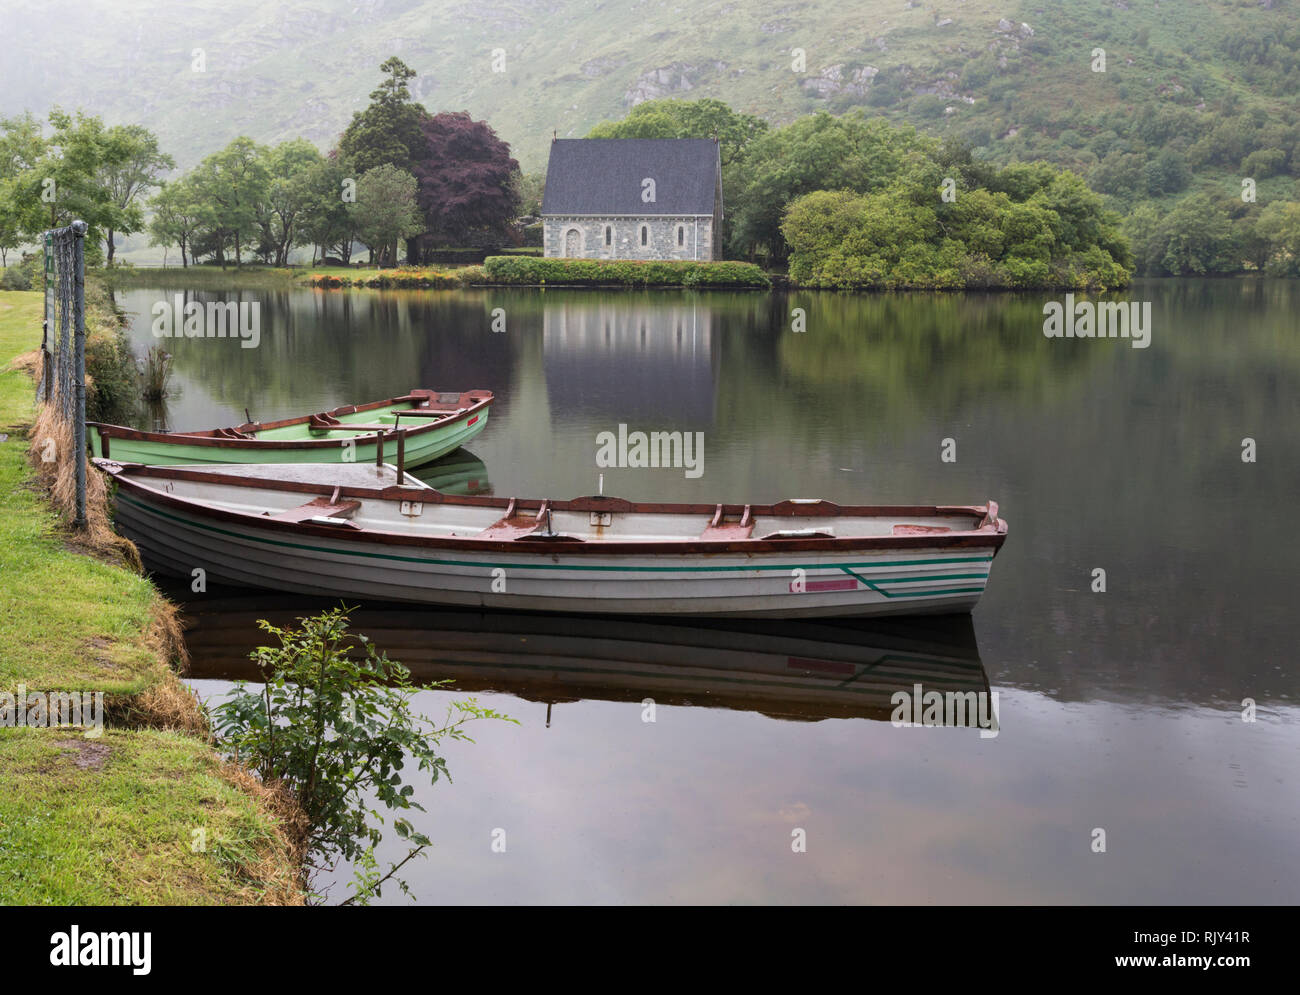 St Finbarr's Oratory seen across the lake at Gougane Barra, County Cork, Republic of Ireland.  Eire. Rowing boats in foreground. - Stock Image